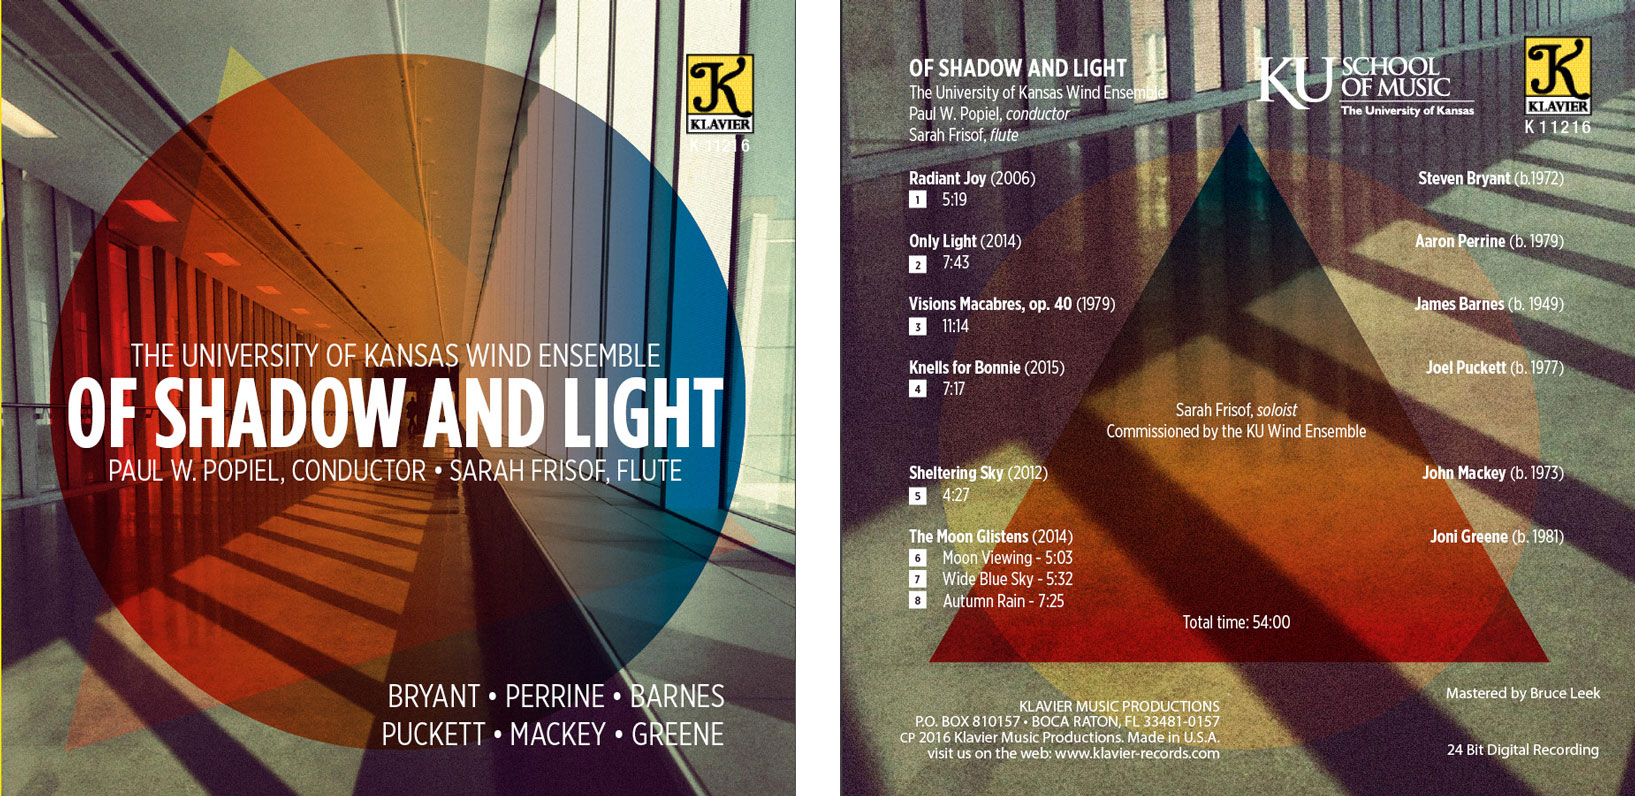 KU Wind Ensemble Of Shadow and Light album cover